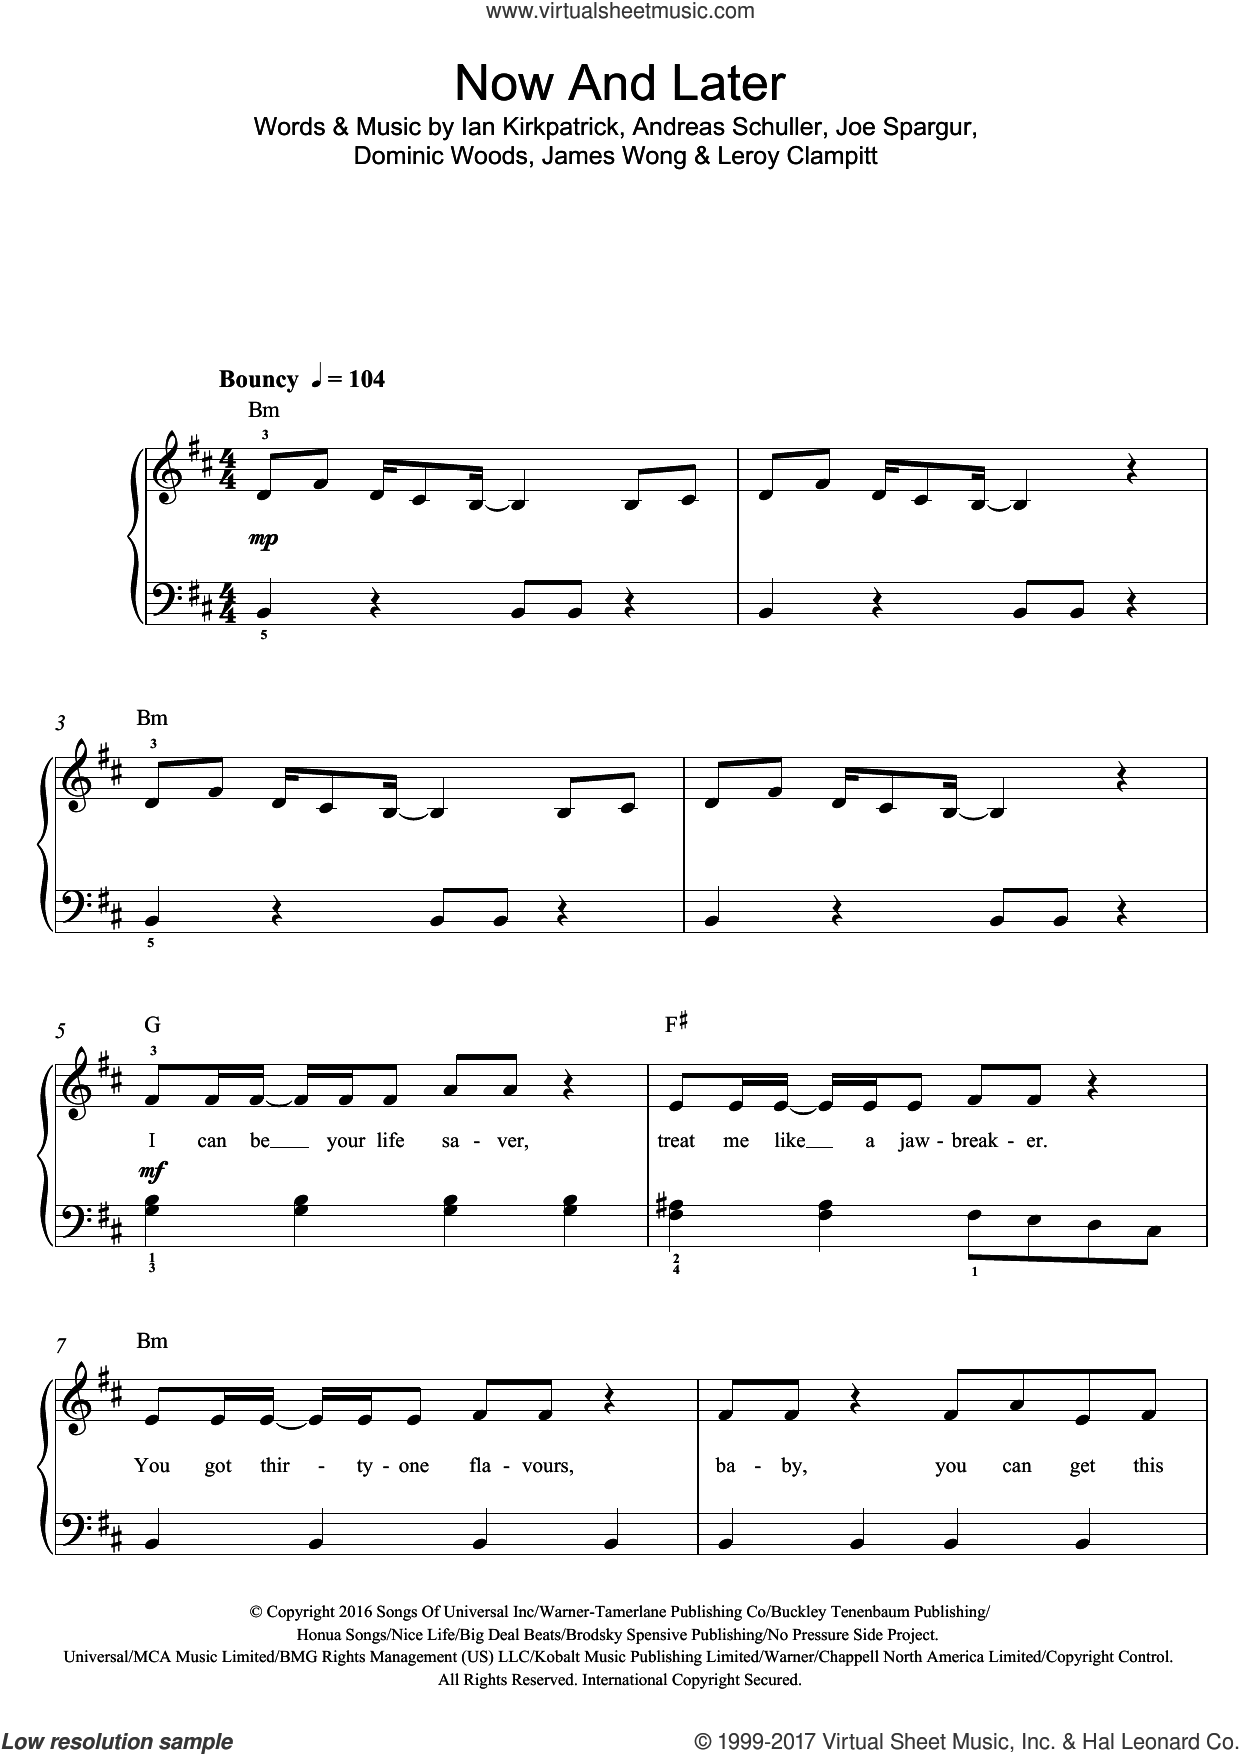 Now And Later sheet music for piano solo (beginners) by Leroy Clampitt, Andreas Schuller and Ian Kirkpatrick. Score Image Preview.